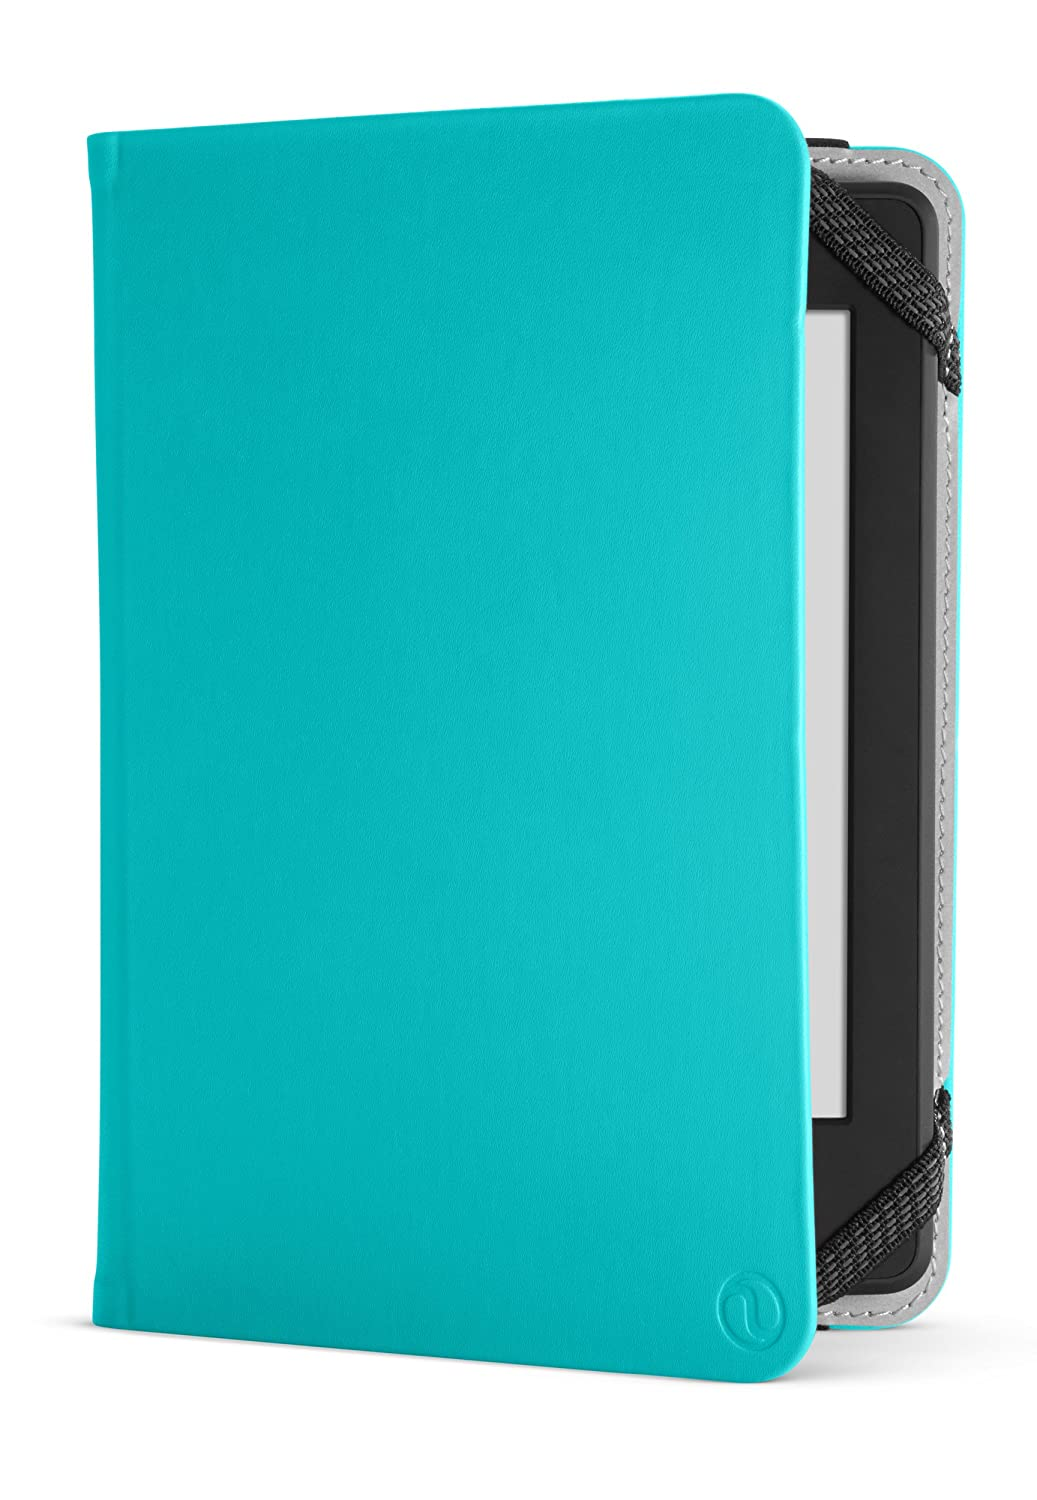 NuPro Amazon Kindle Paperwhite Case - Lightweight Durable Slim Folio Cover (fits Kindle and Kindle Paperwhite), Turquoise